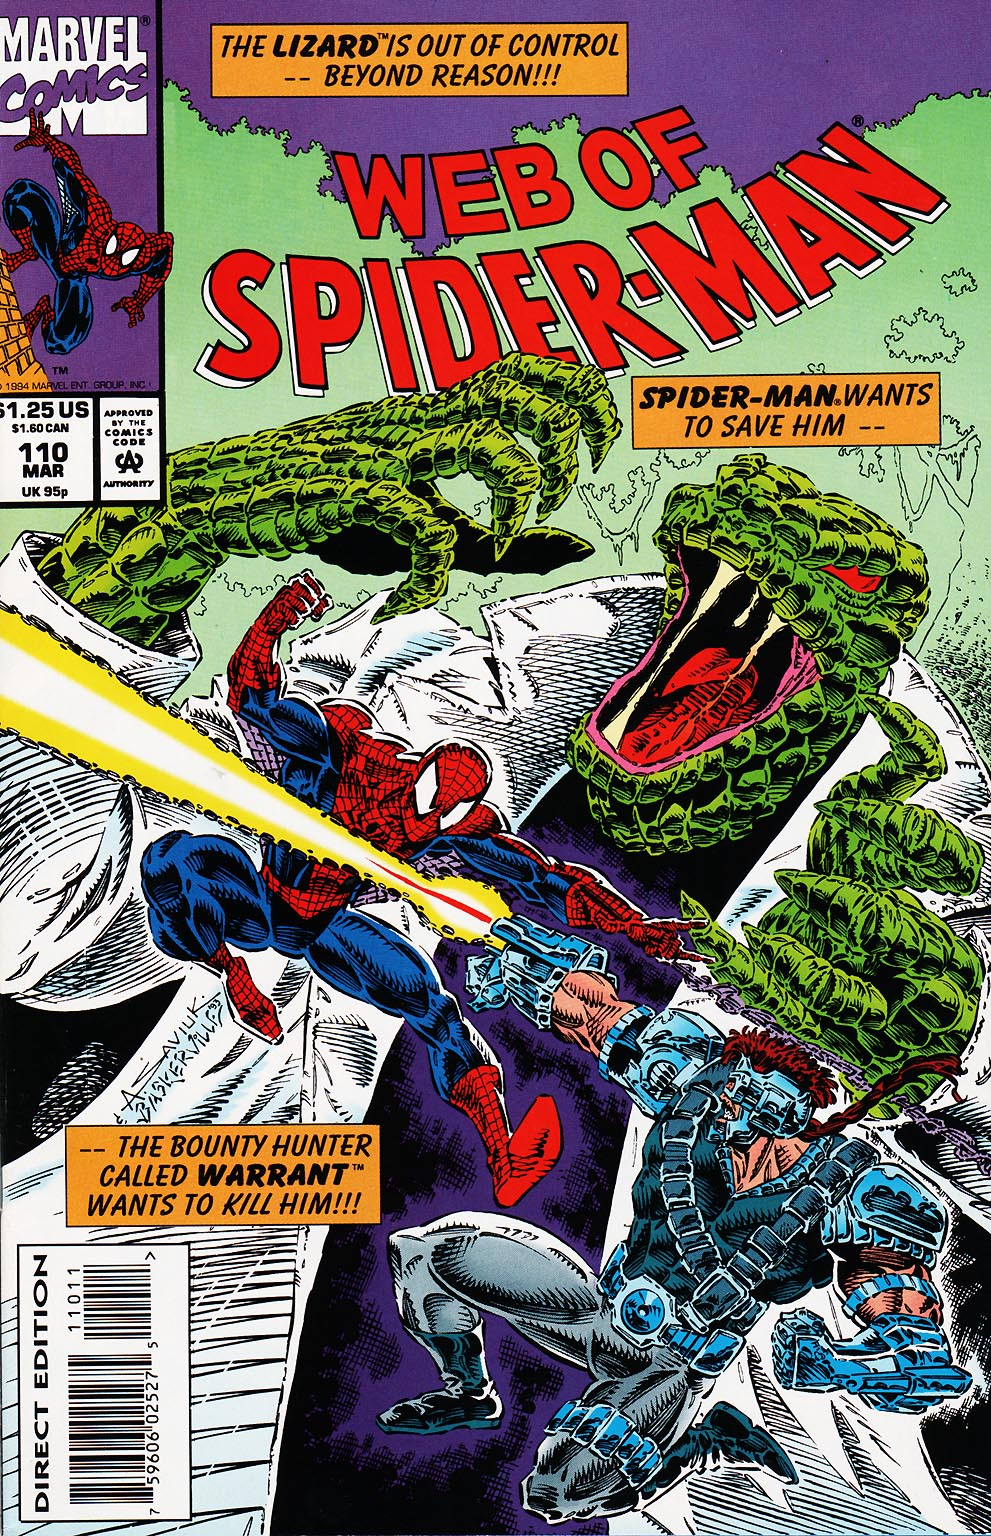 Web of Spider-Man (1985) 110 Page 1